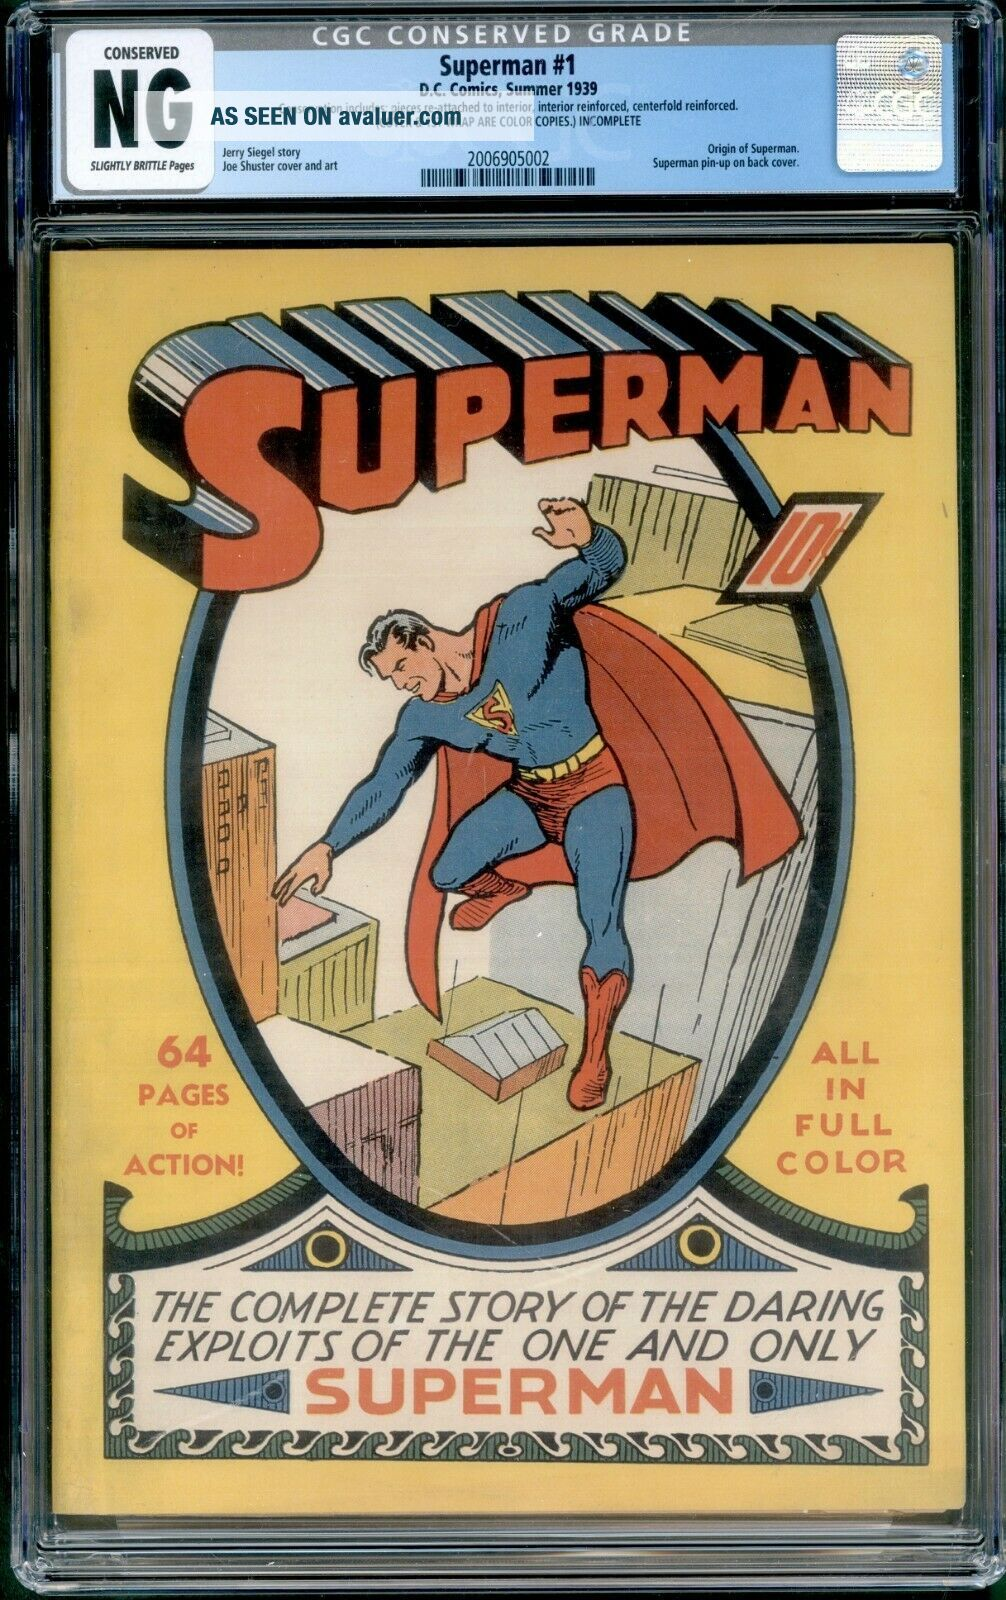 Superman 1 CGC NG Conserved coverless DC 1939 3rd most valuable comic GA Grail